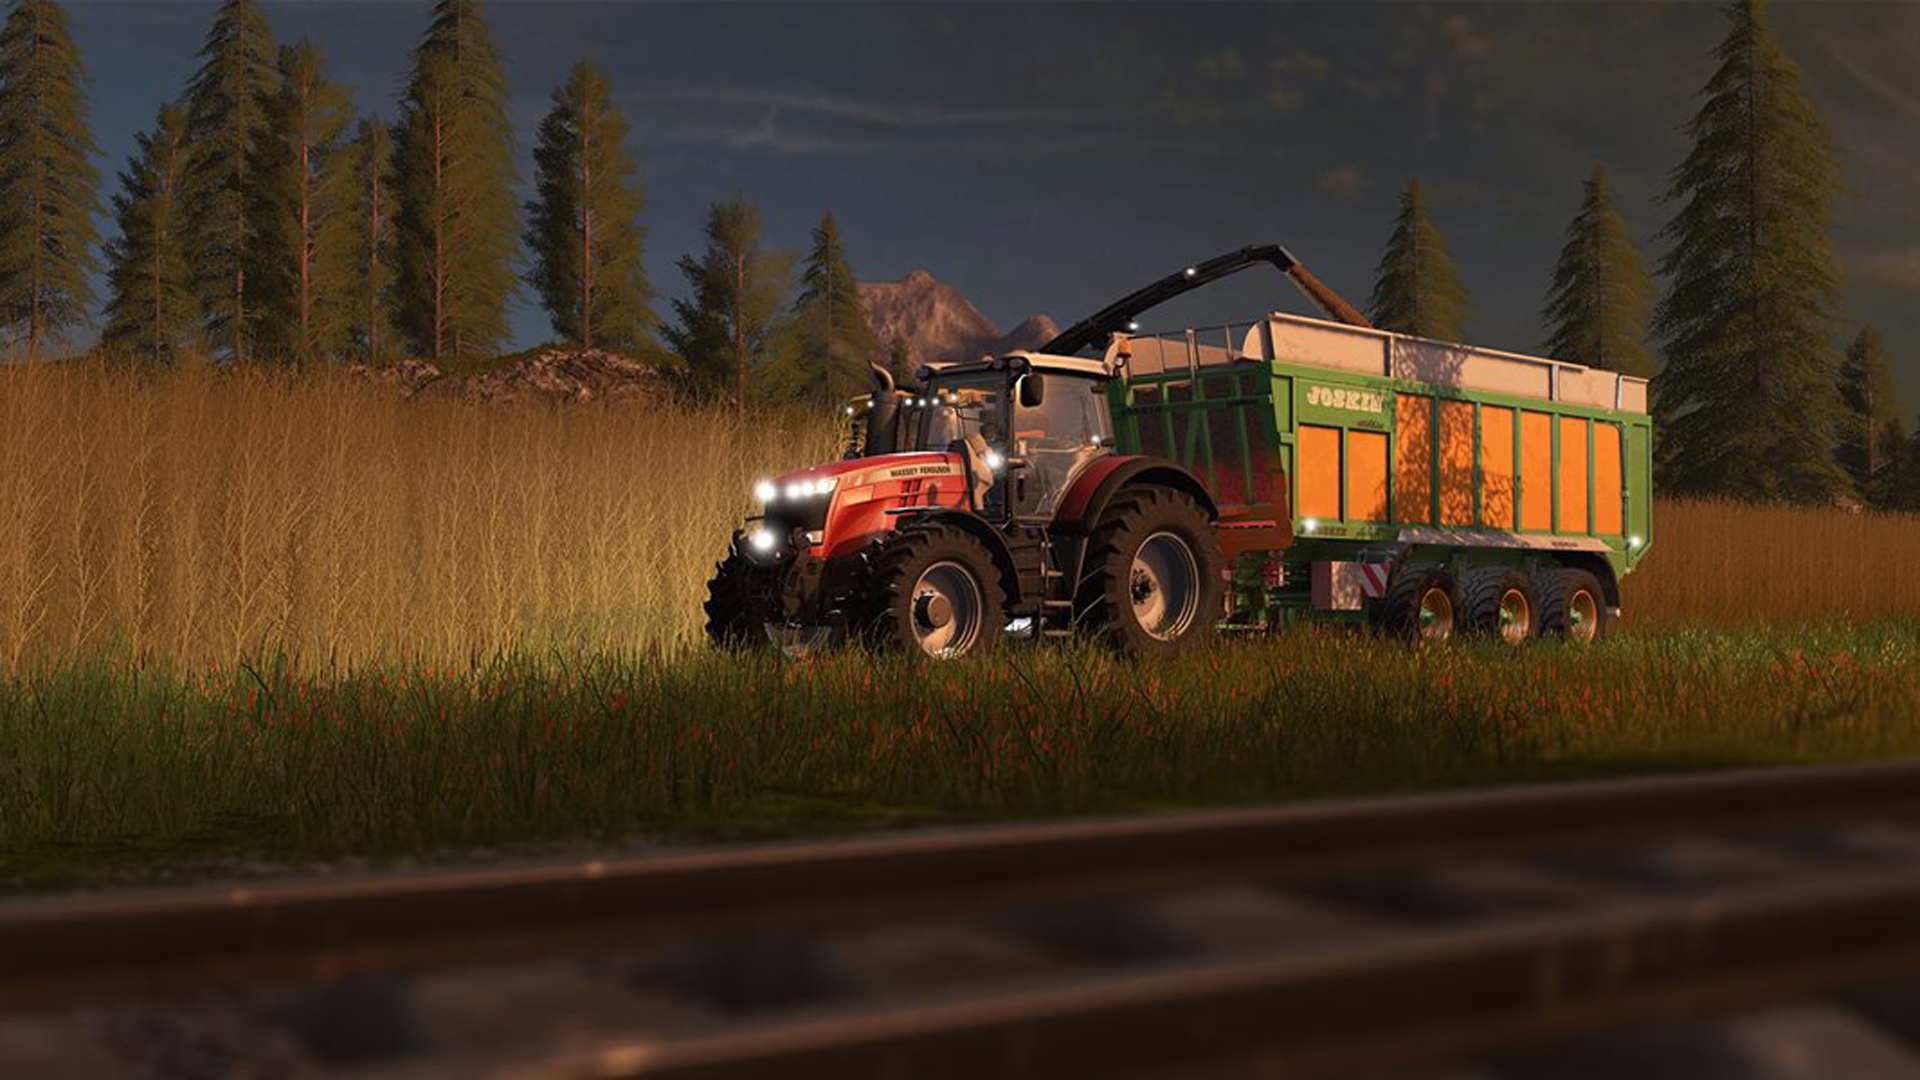 Farming Simulator 17 Wallpapers High Quality Download 1920x1080